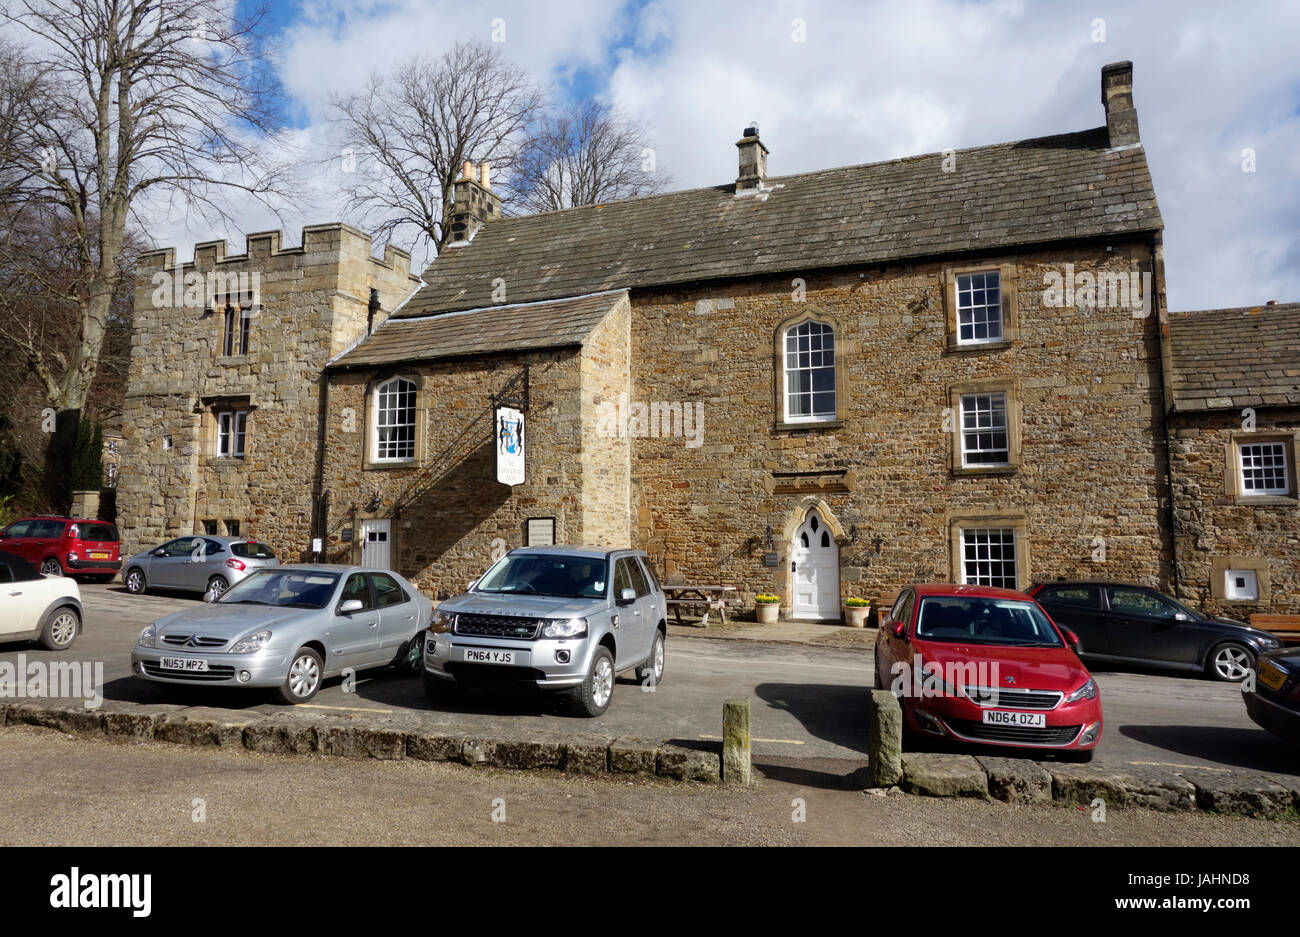 The Lord Crewe Arms, Blanchland - Stock Image